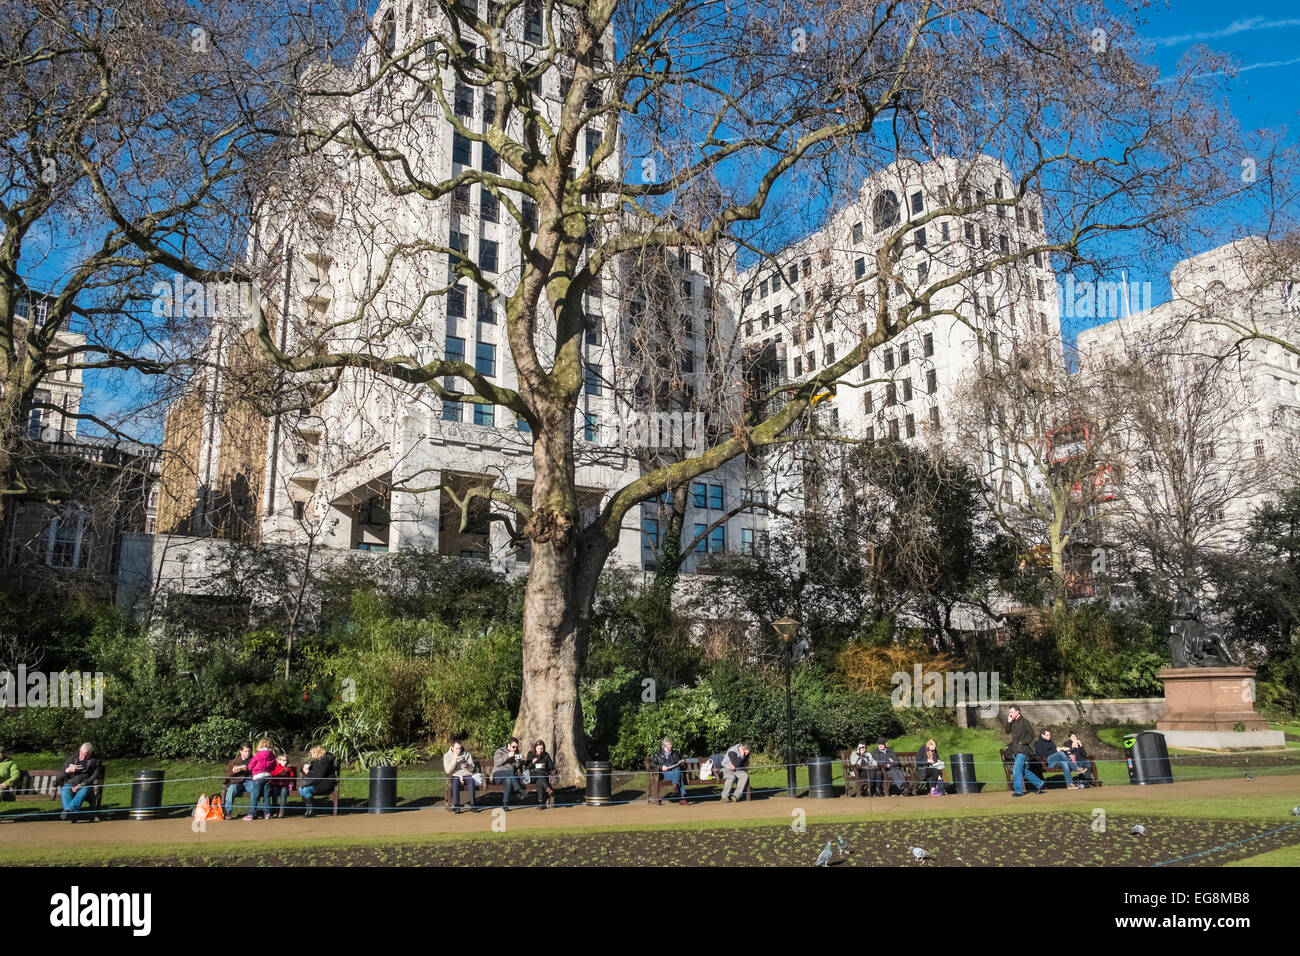 People sitting and relaxing in winter sunshine, Victoria Embankment Gardens, London, UK - Stock Image